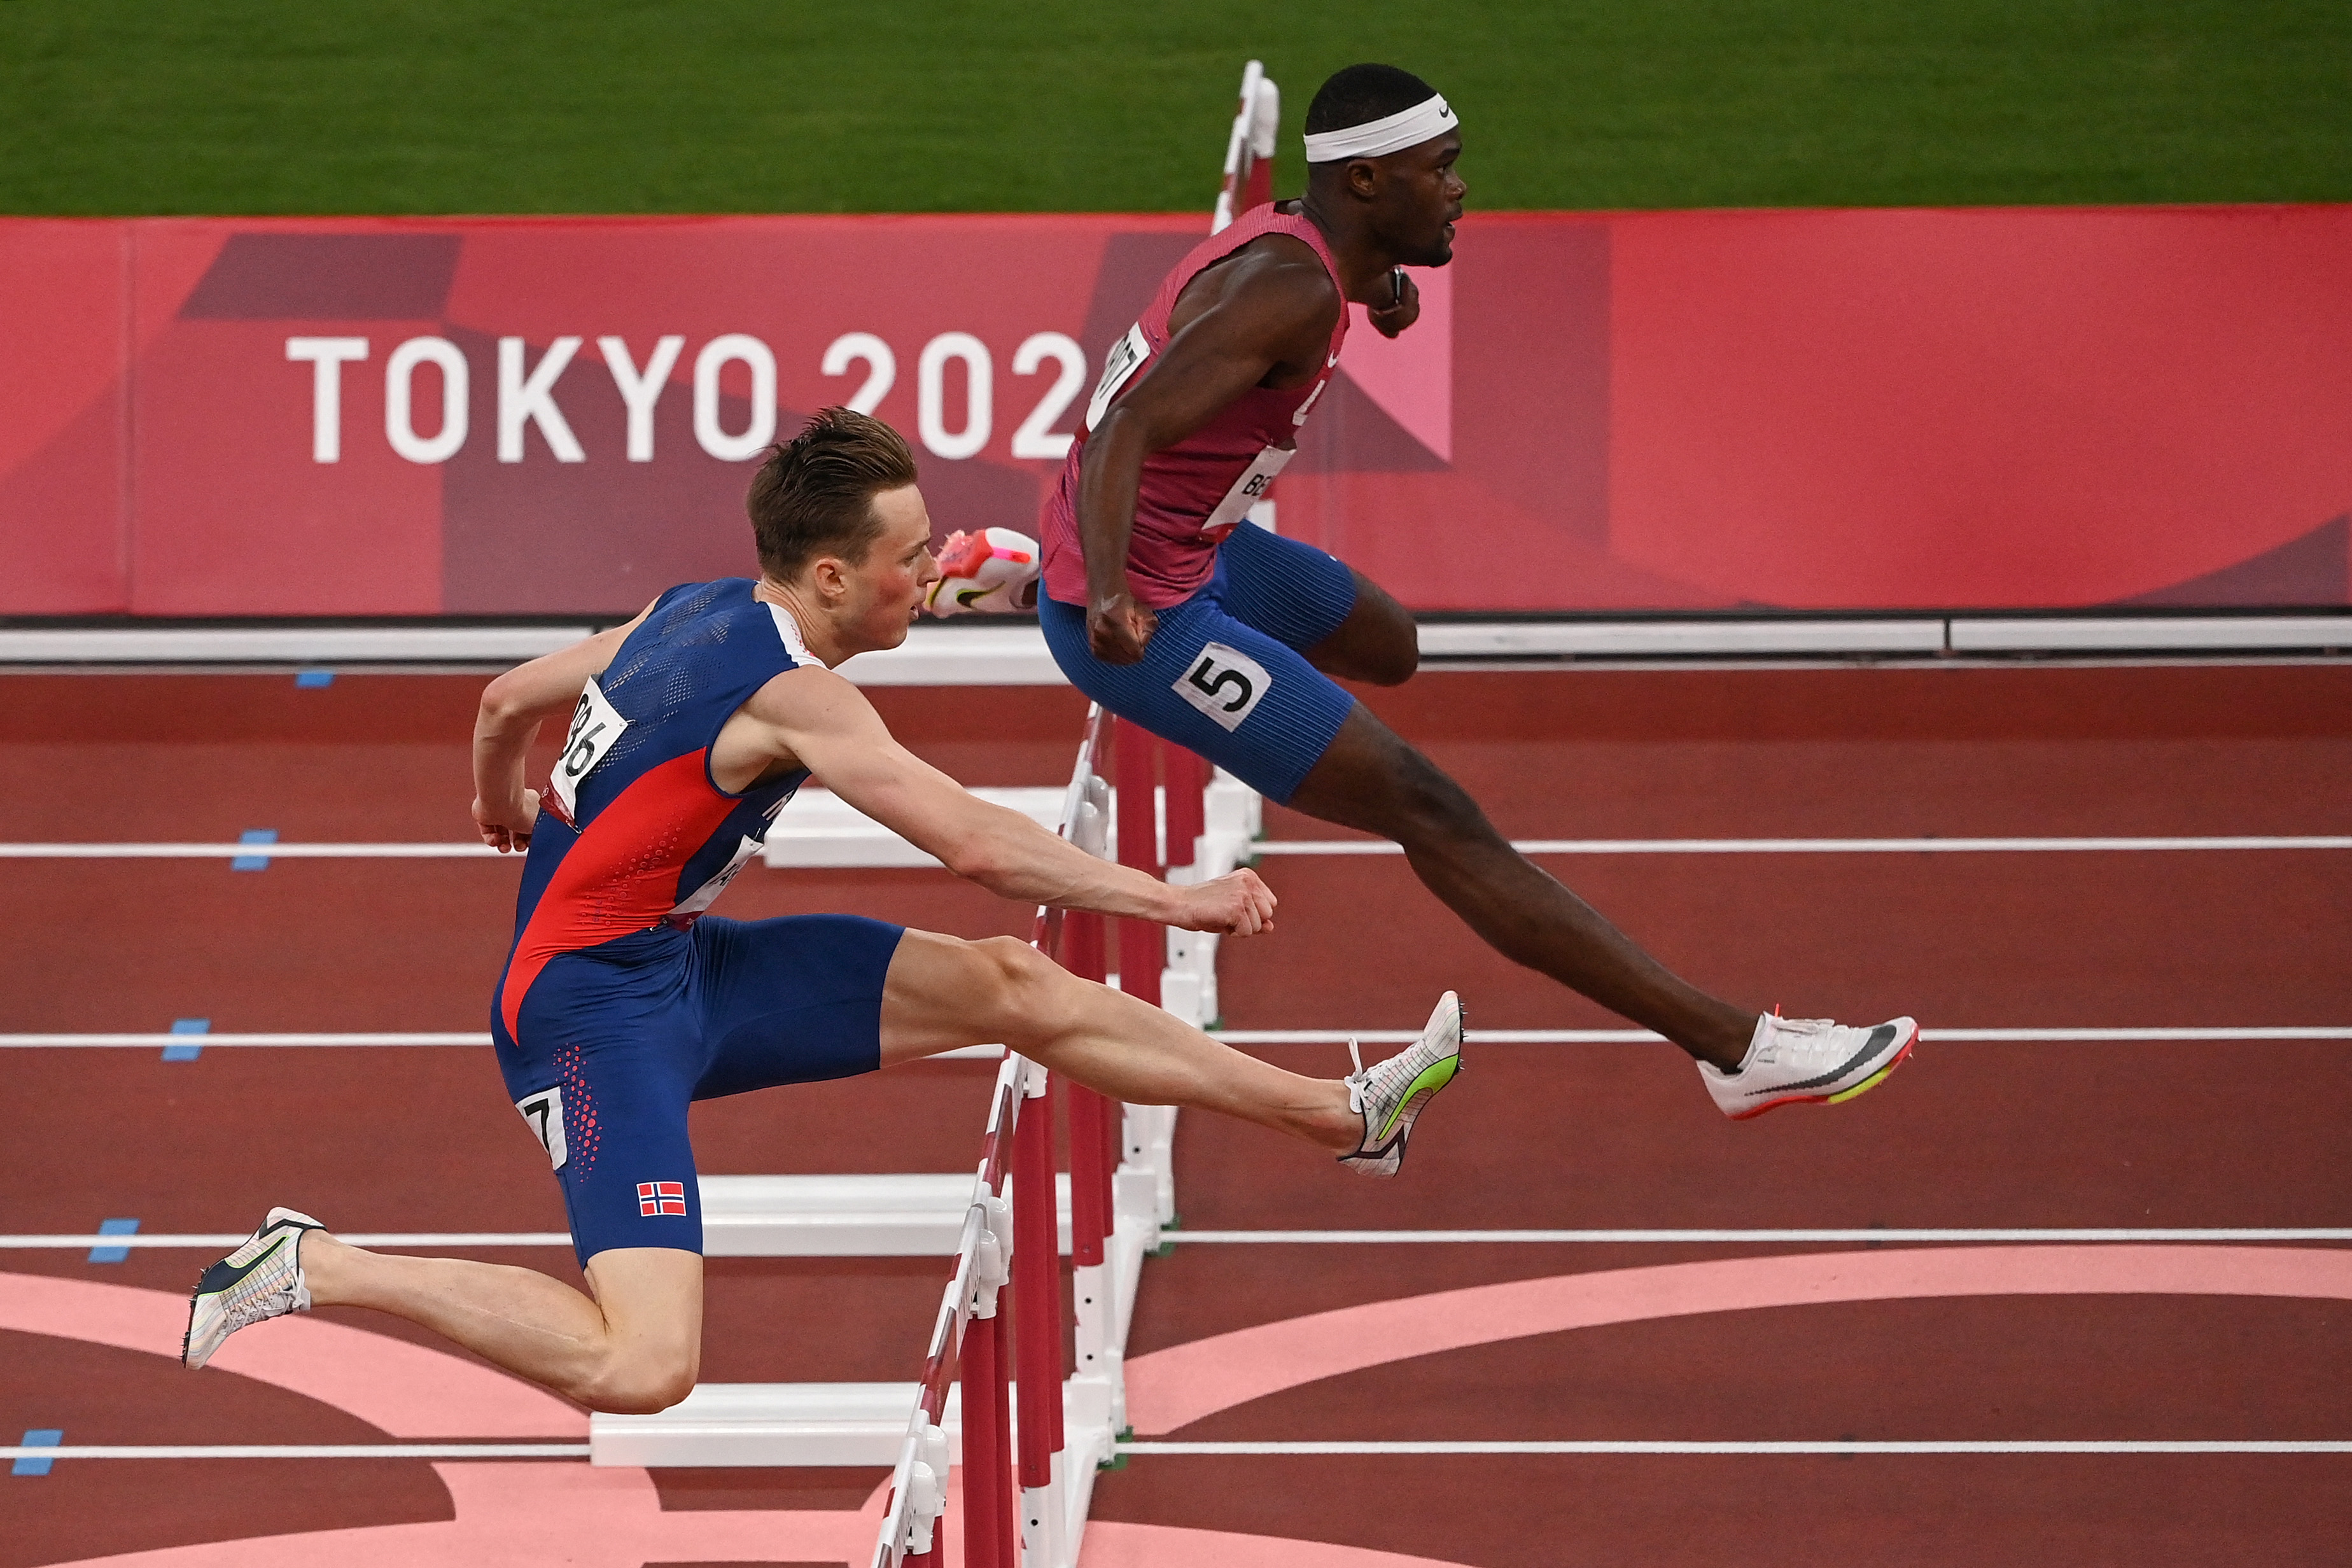 Norway's Karsten Warholm and USA's Rai Benjamin compete in the men's 400m hurdles semi-finals during the Tokyo 2020 Olympic Games at the Olympic stadium in Tokyo on August 1, 2021.